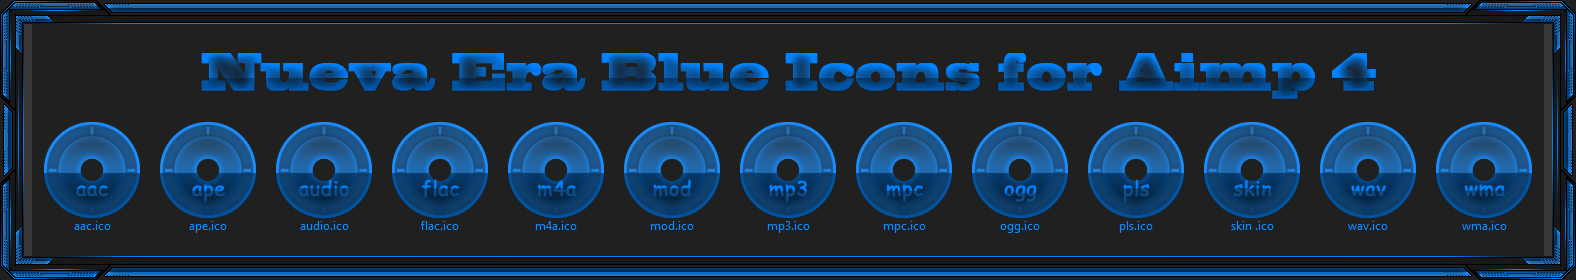 Nueva Era Blue Icons for Aimp 4 by Agelyk